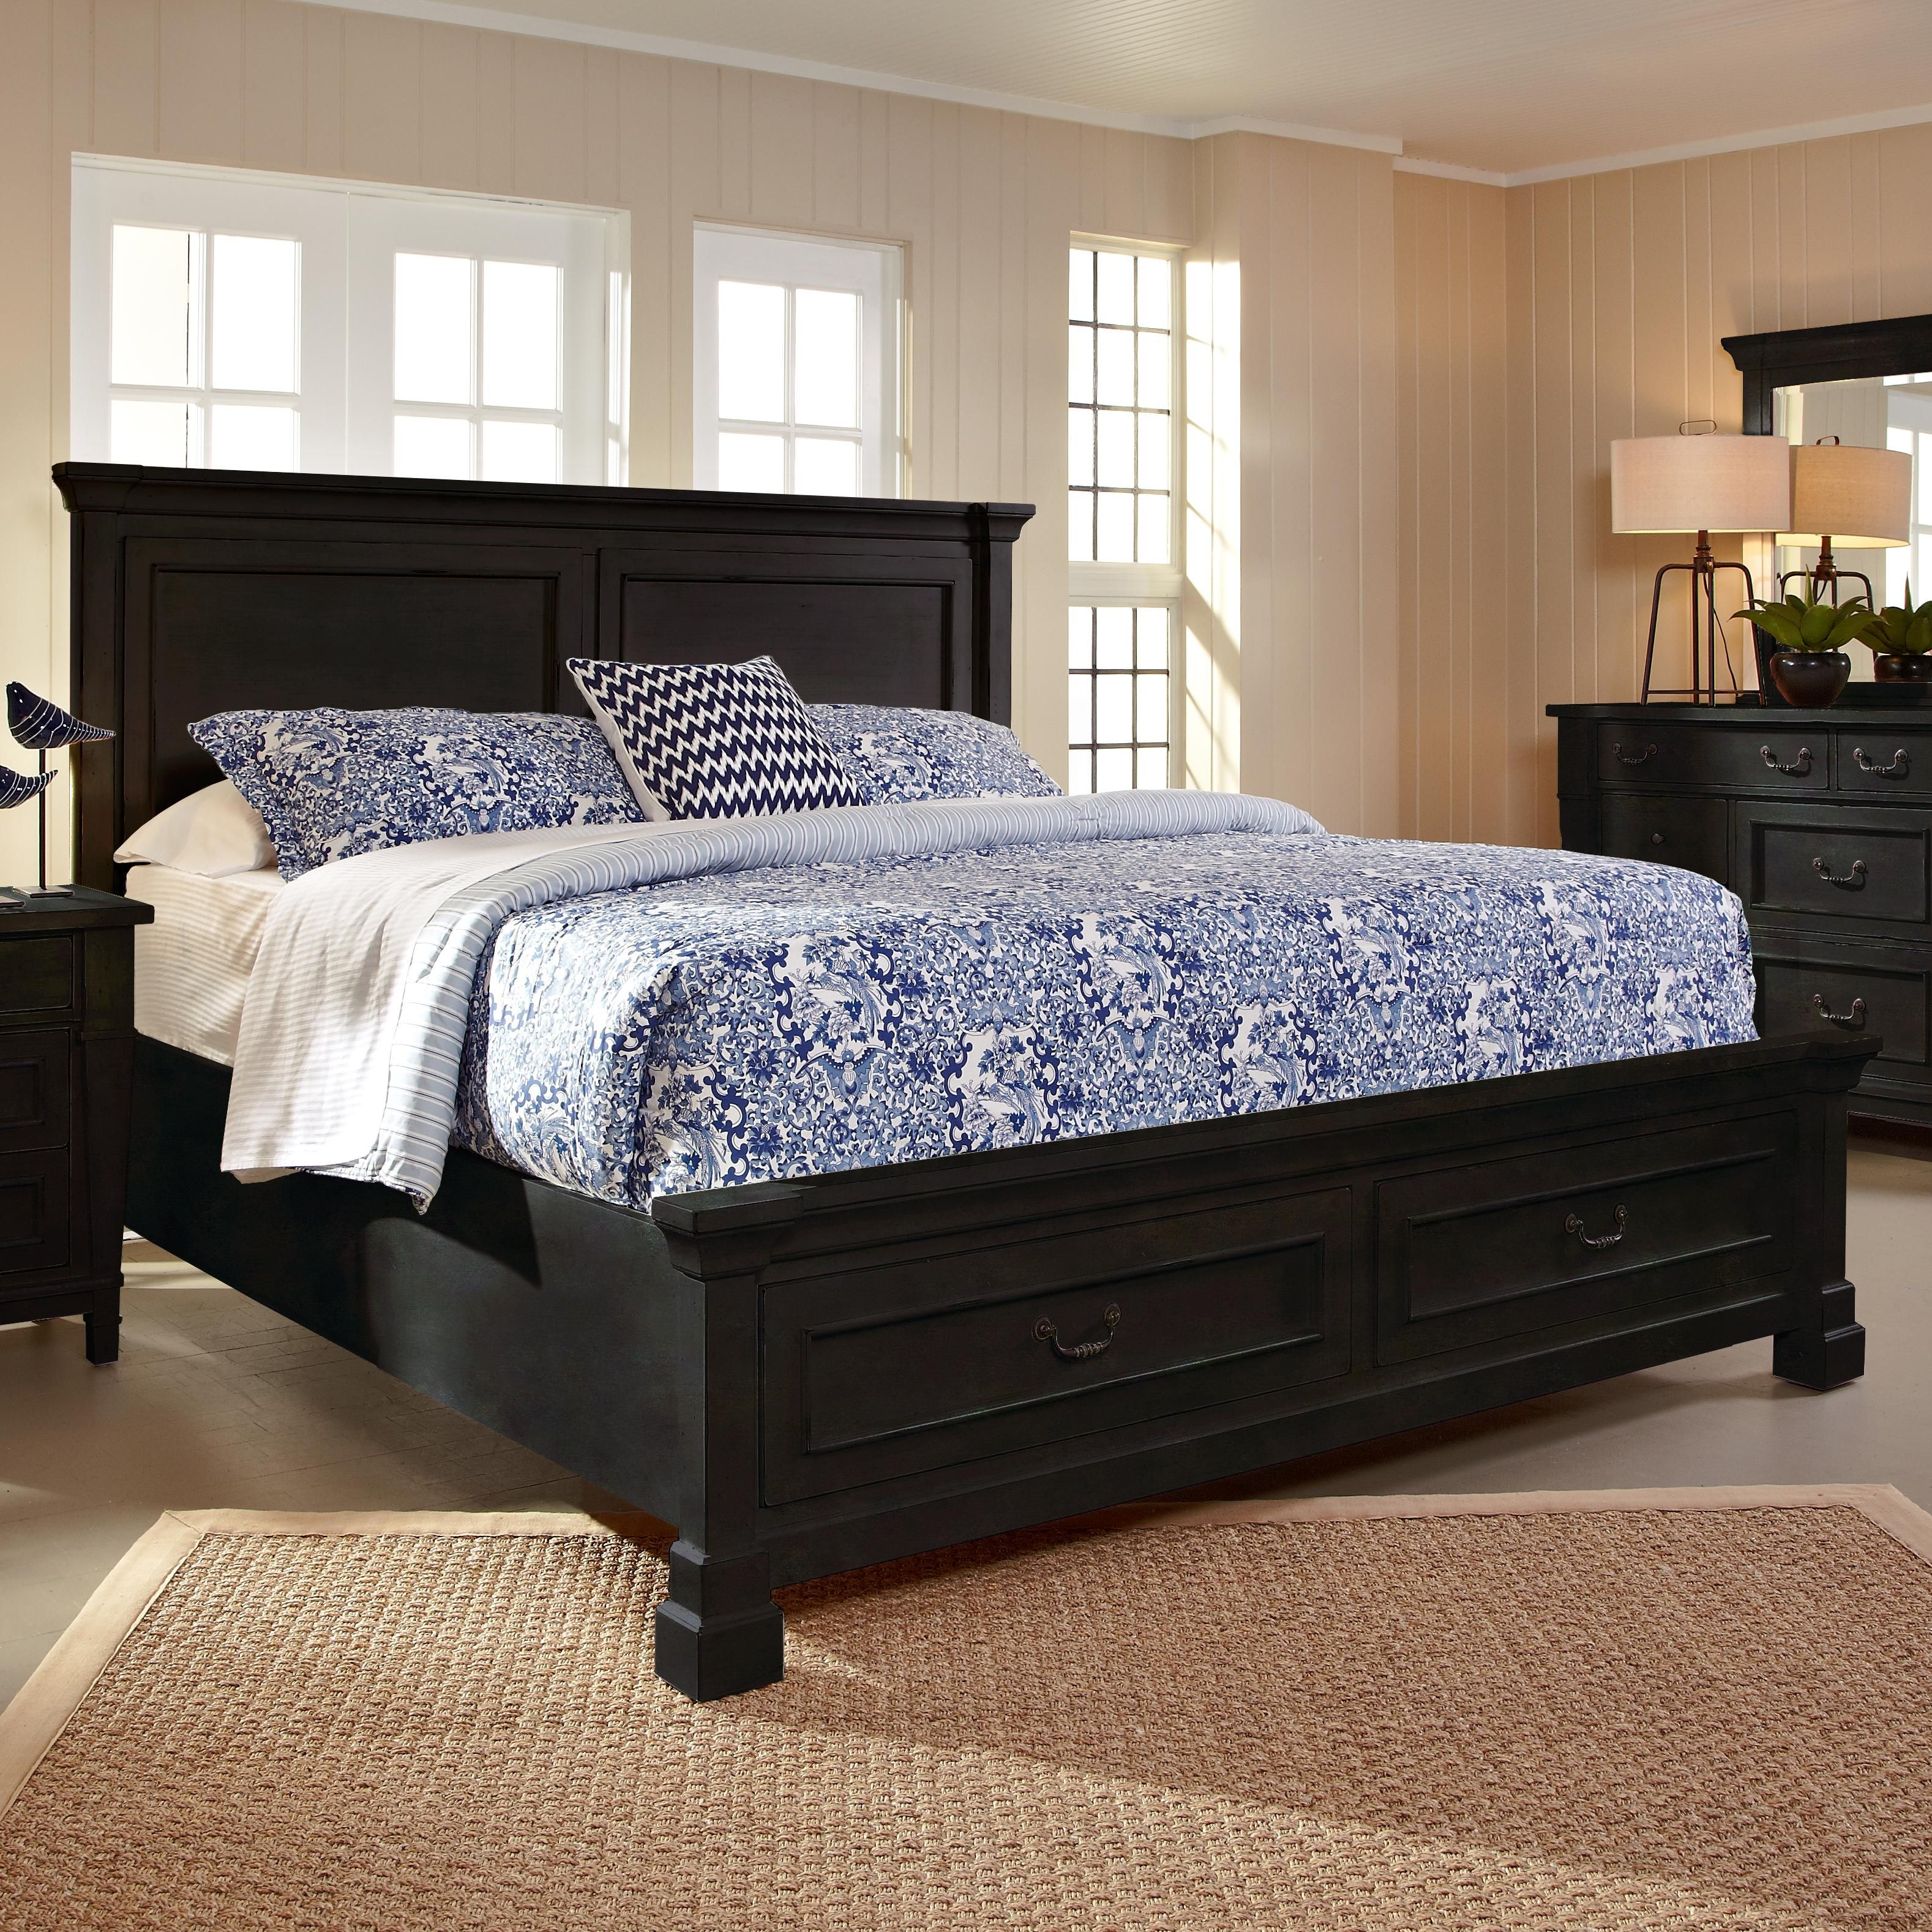 This Springdale Queen Panel Bed With Storage Is Fashionable And Functional!